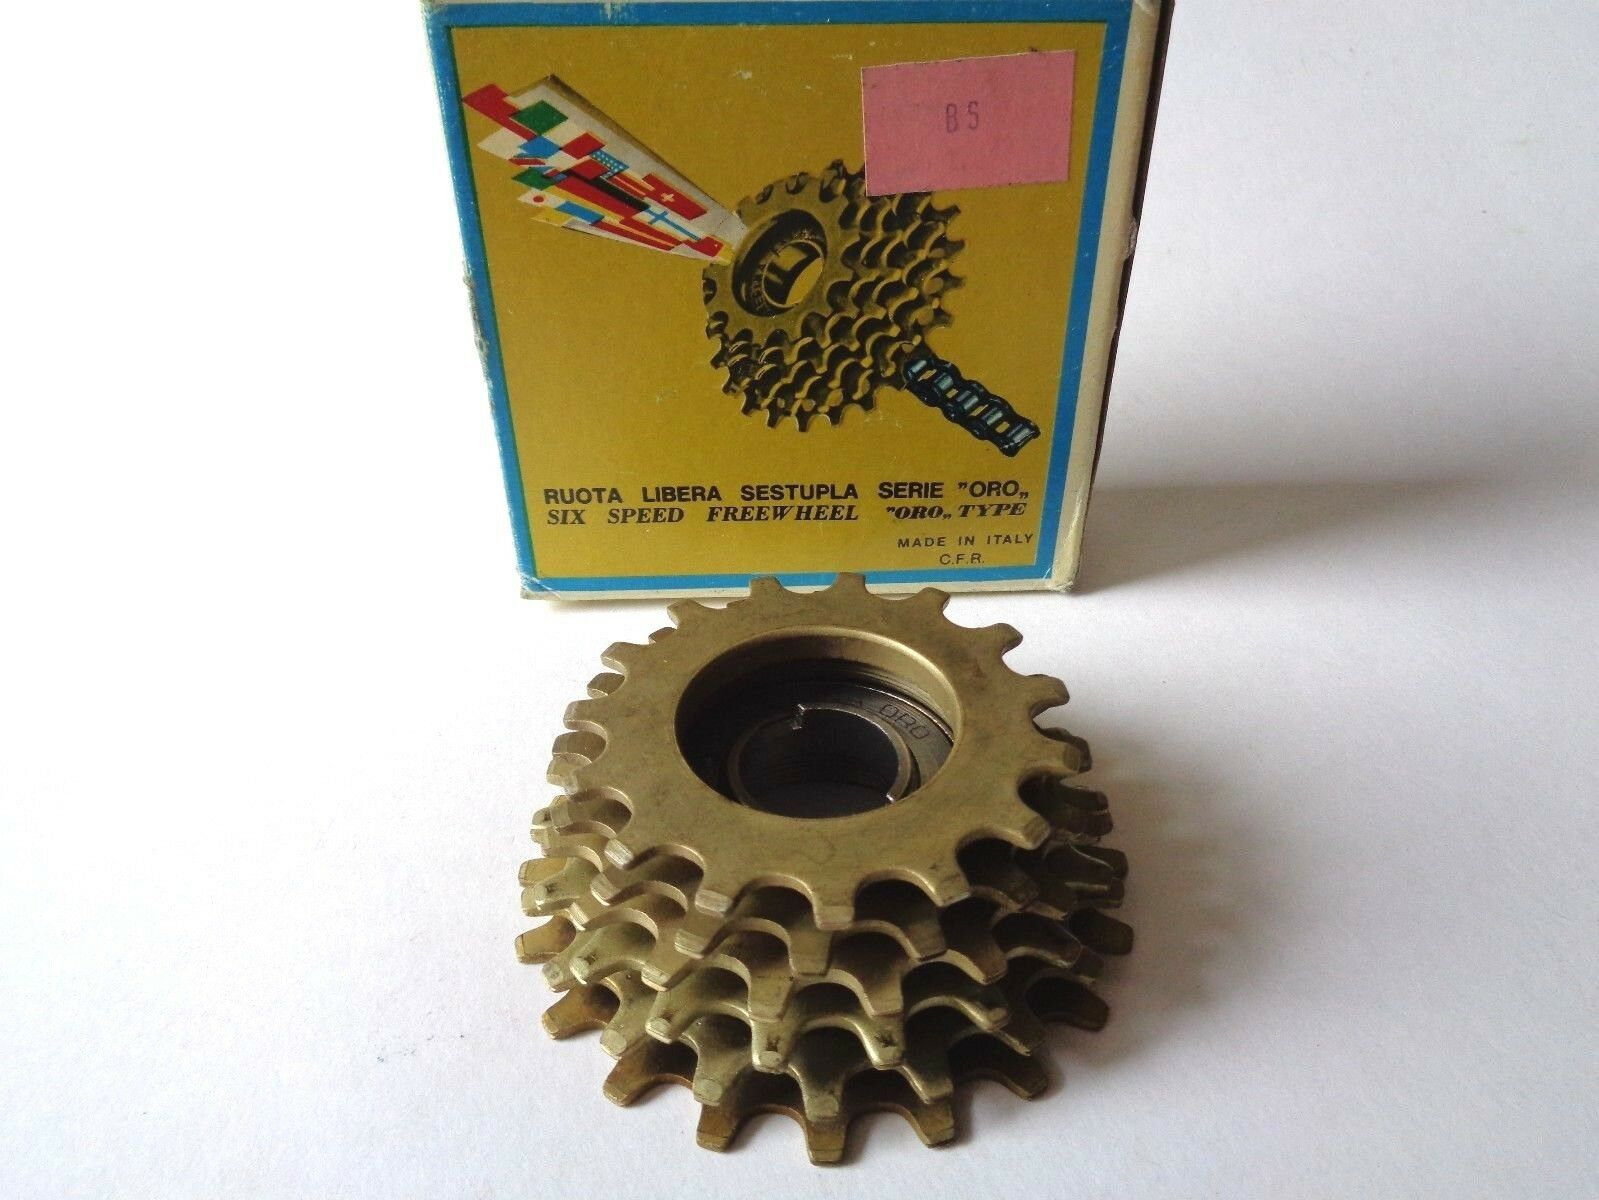 NOS Vintage 1980s REGINA EXTRA gold 15-20 cogs 6 Speed ISO freewheel cassette